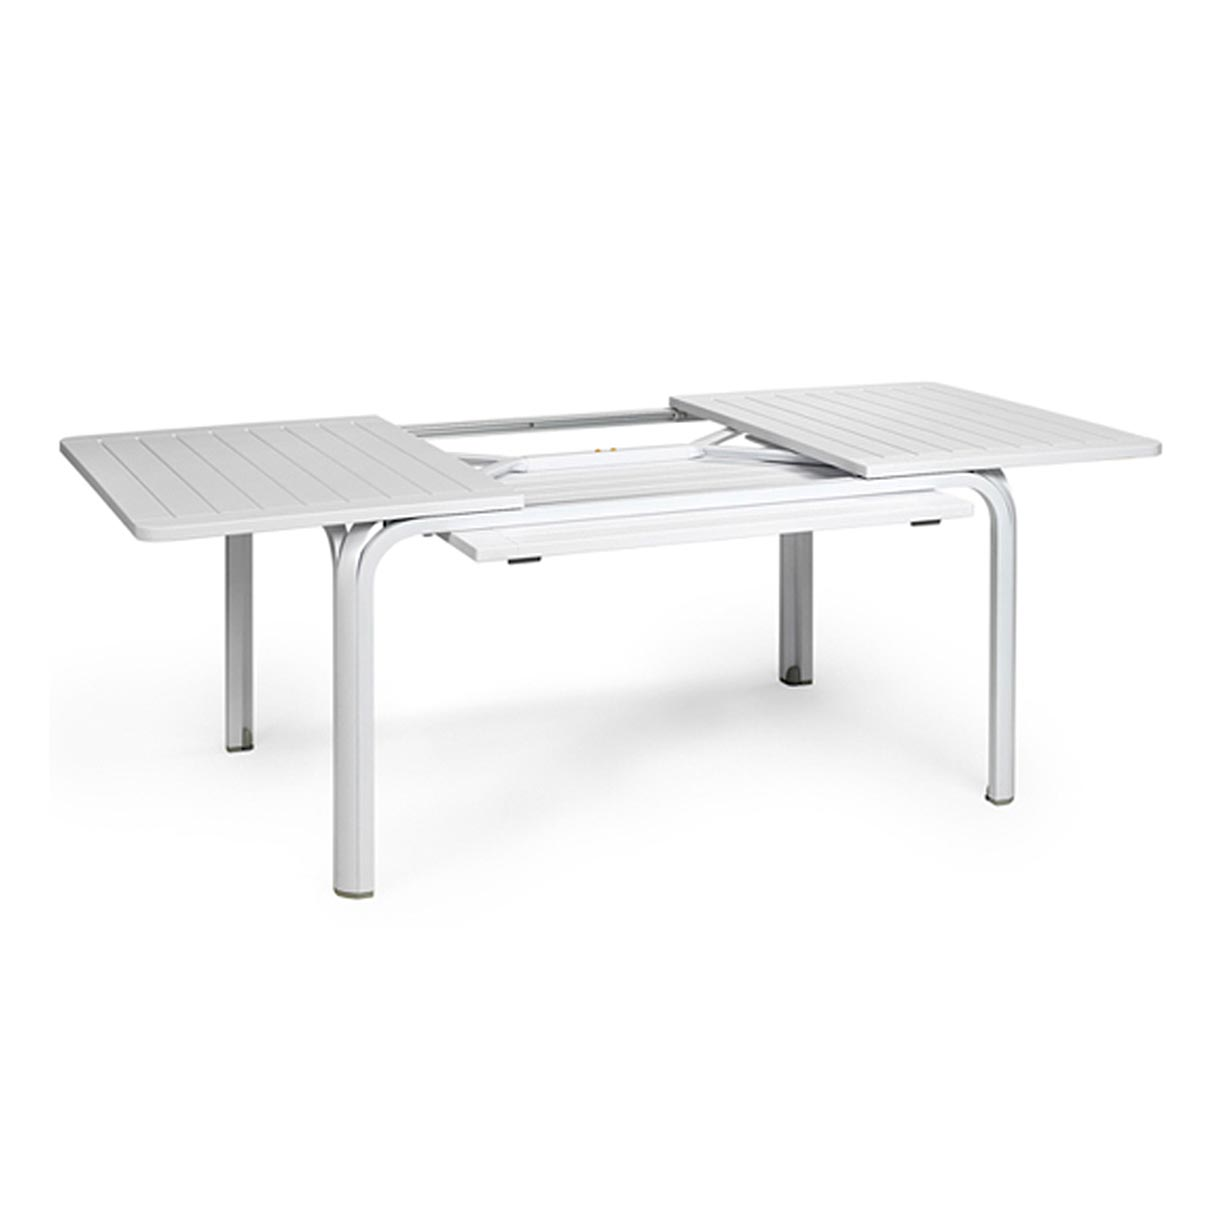 Table de jardin extensible Alloro 140